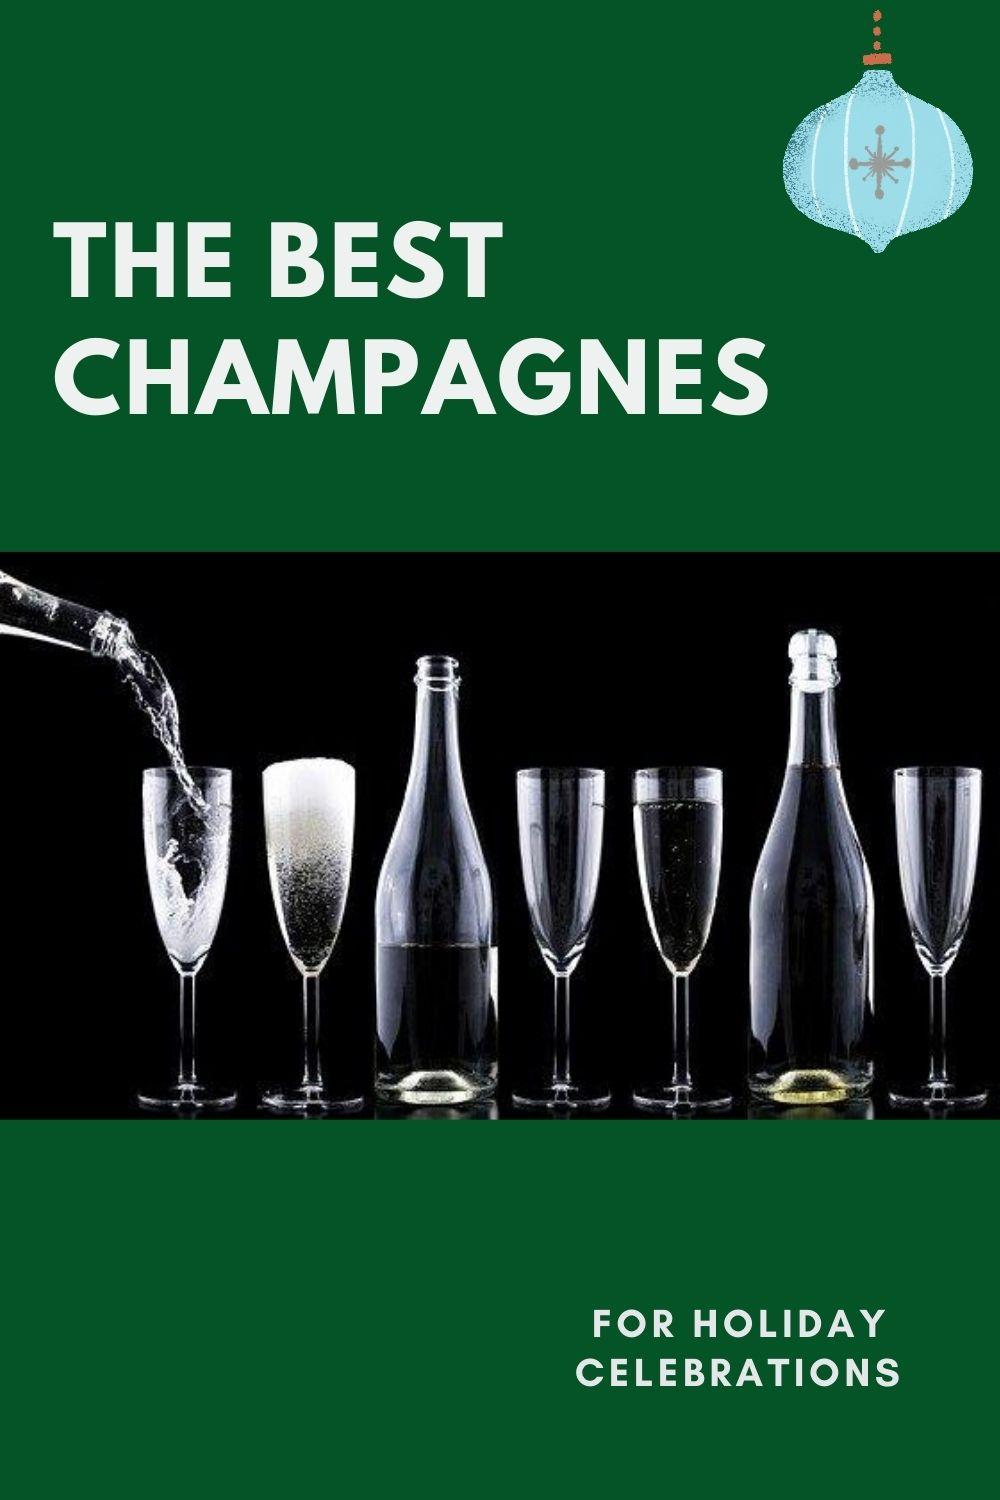 The Best Champagnes for the Holidays graphic